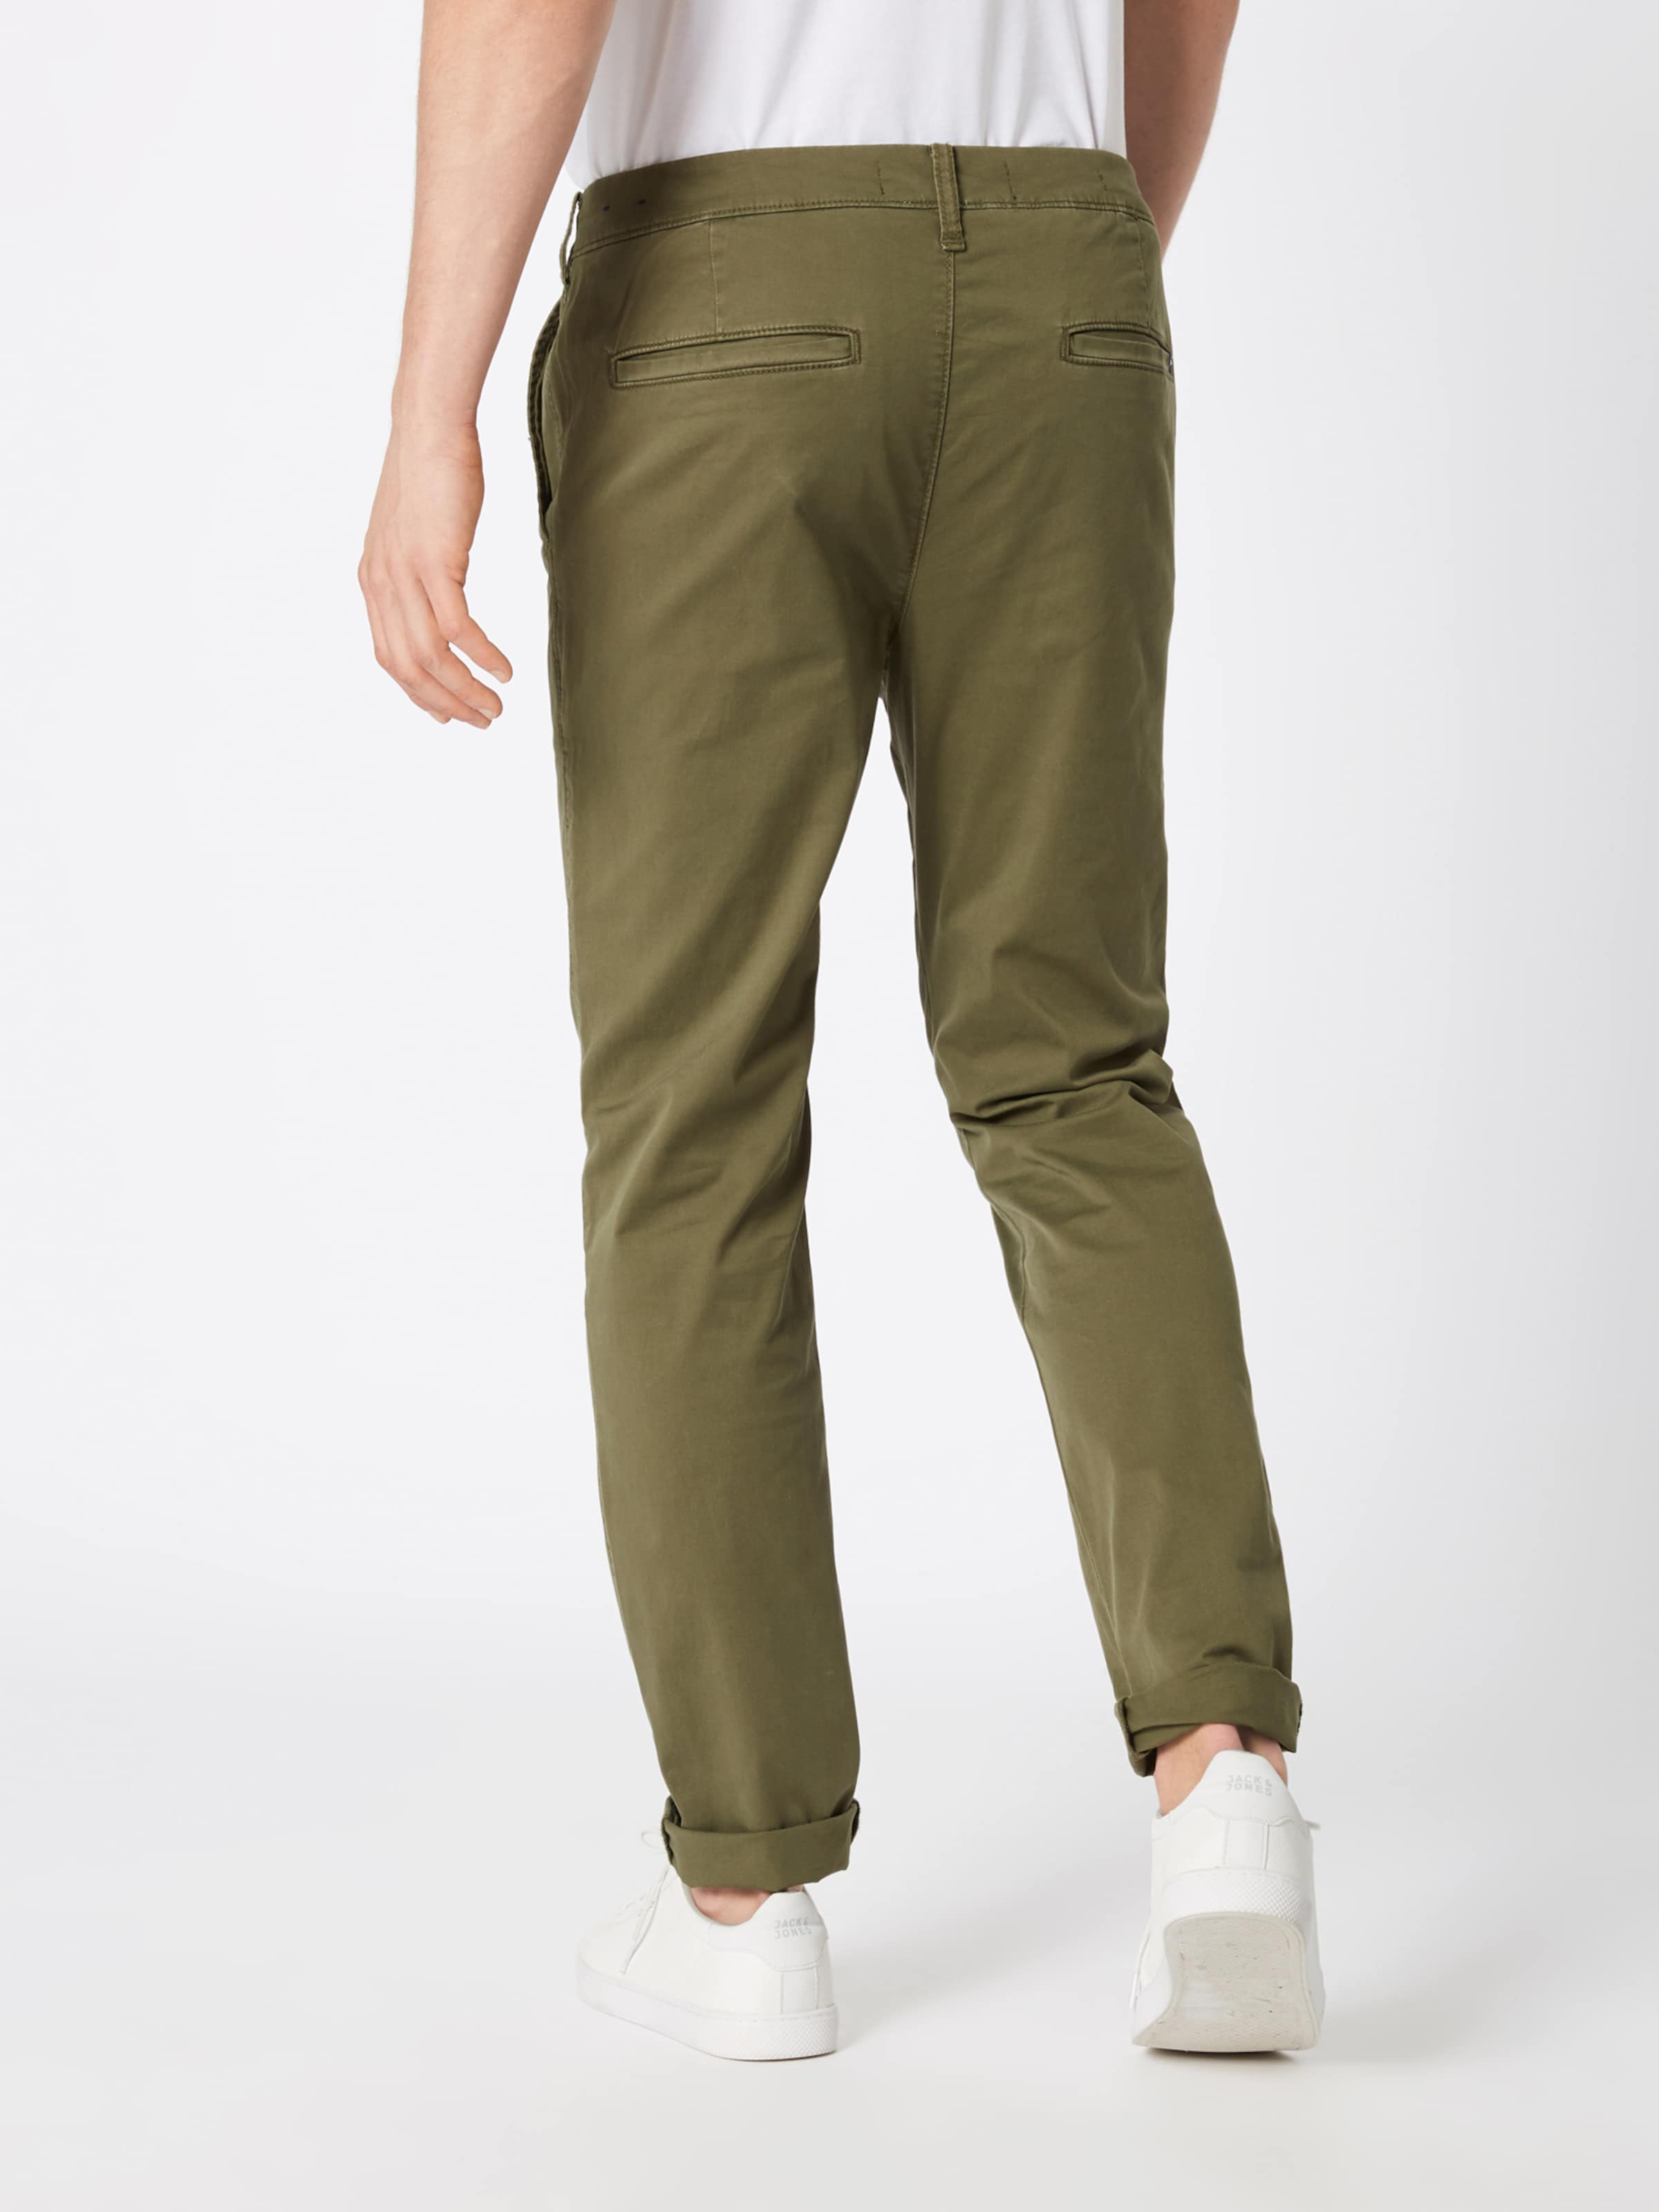 'chino Khaki Dtc' In Skny Hollister Hose IE2DH9